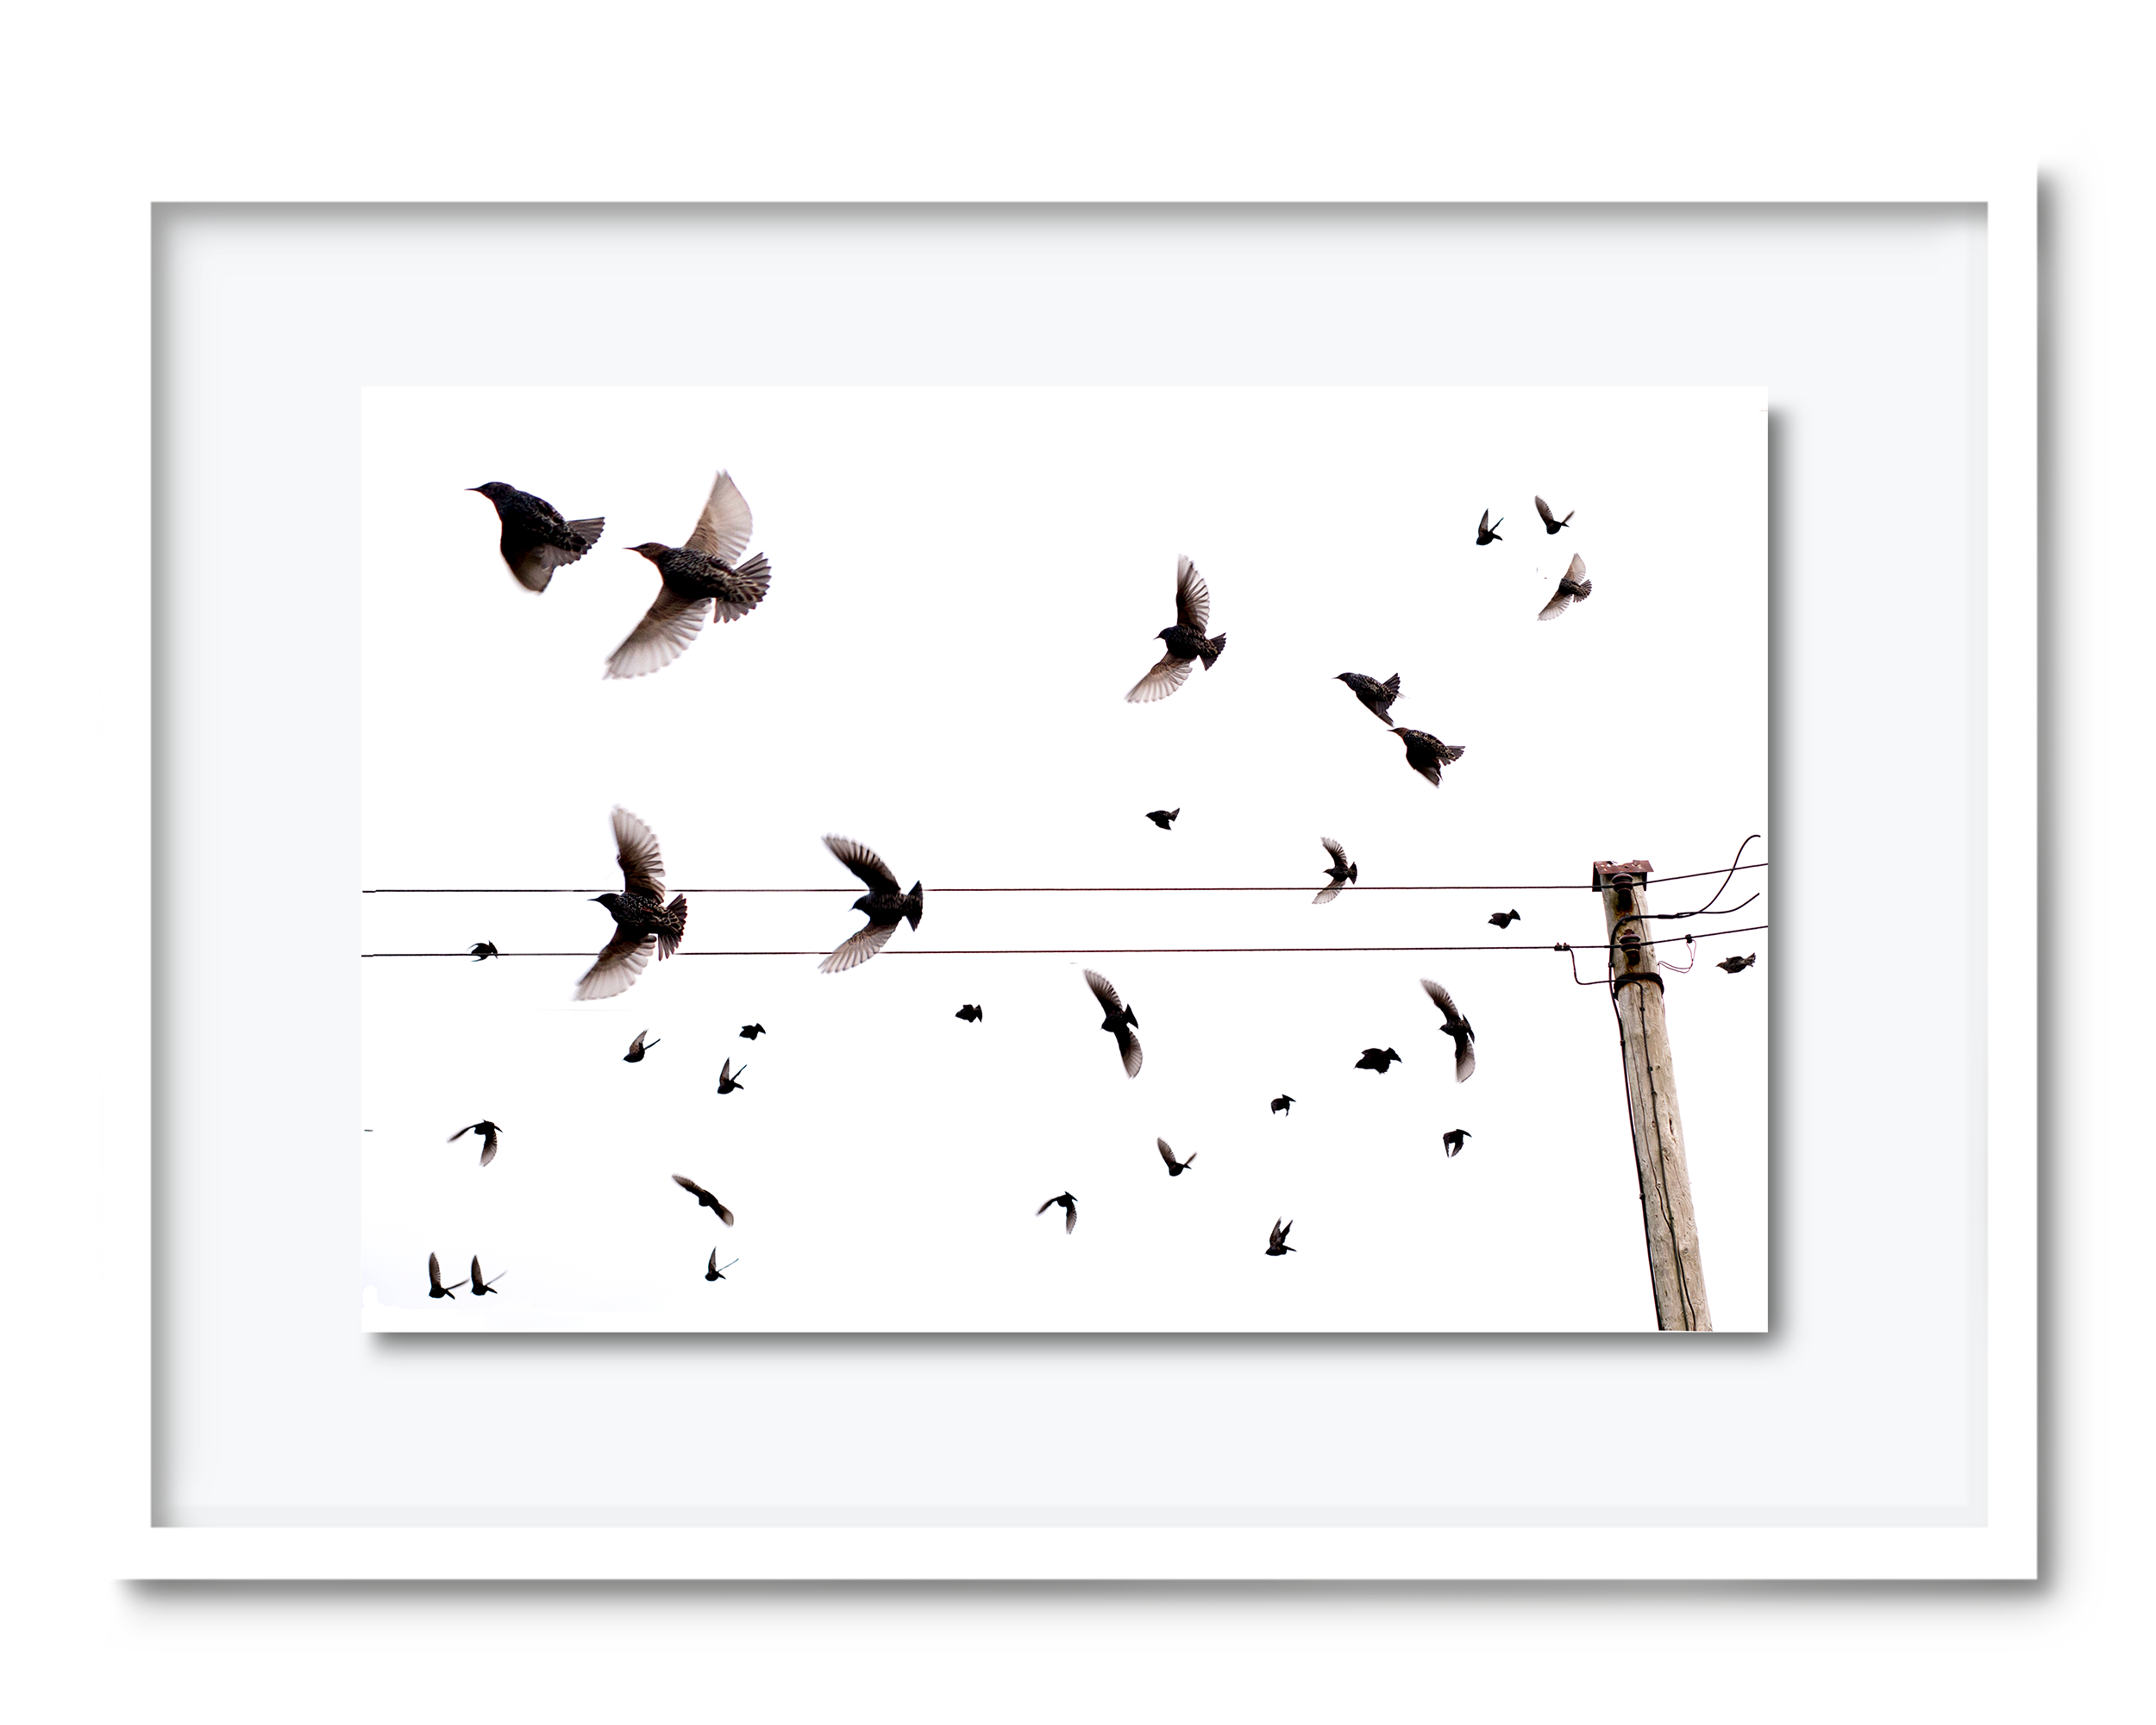 35b.david-pearce-starlings.png